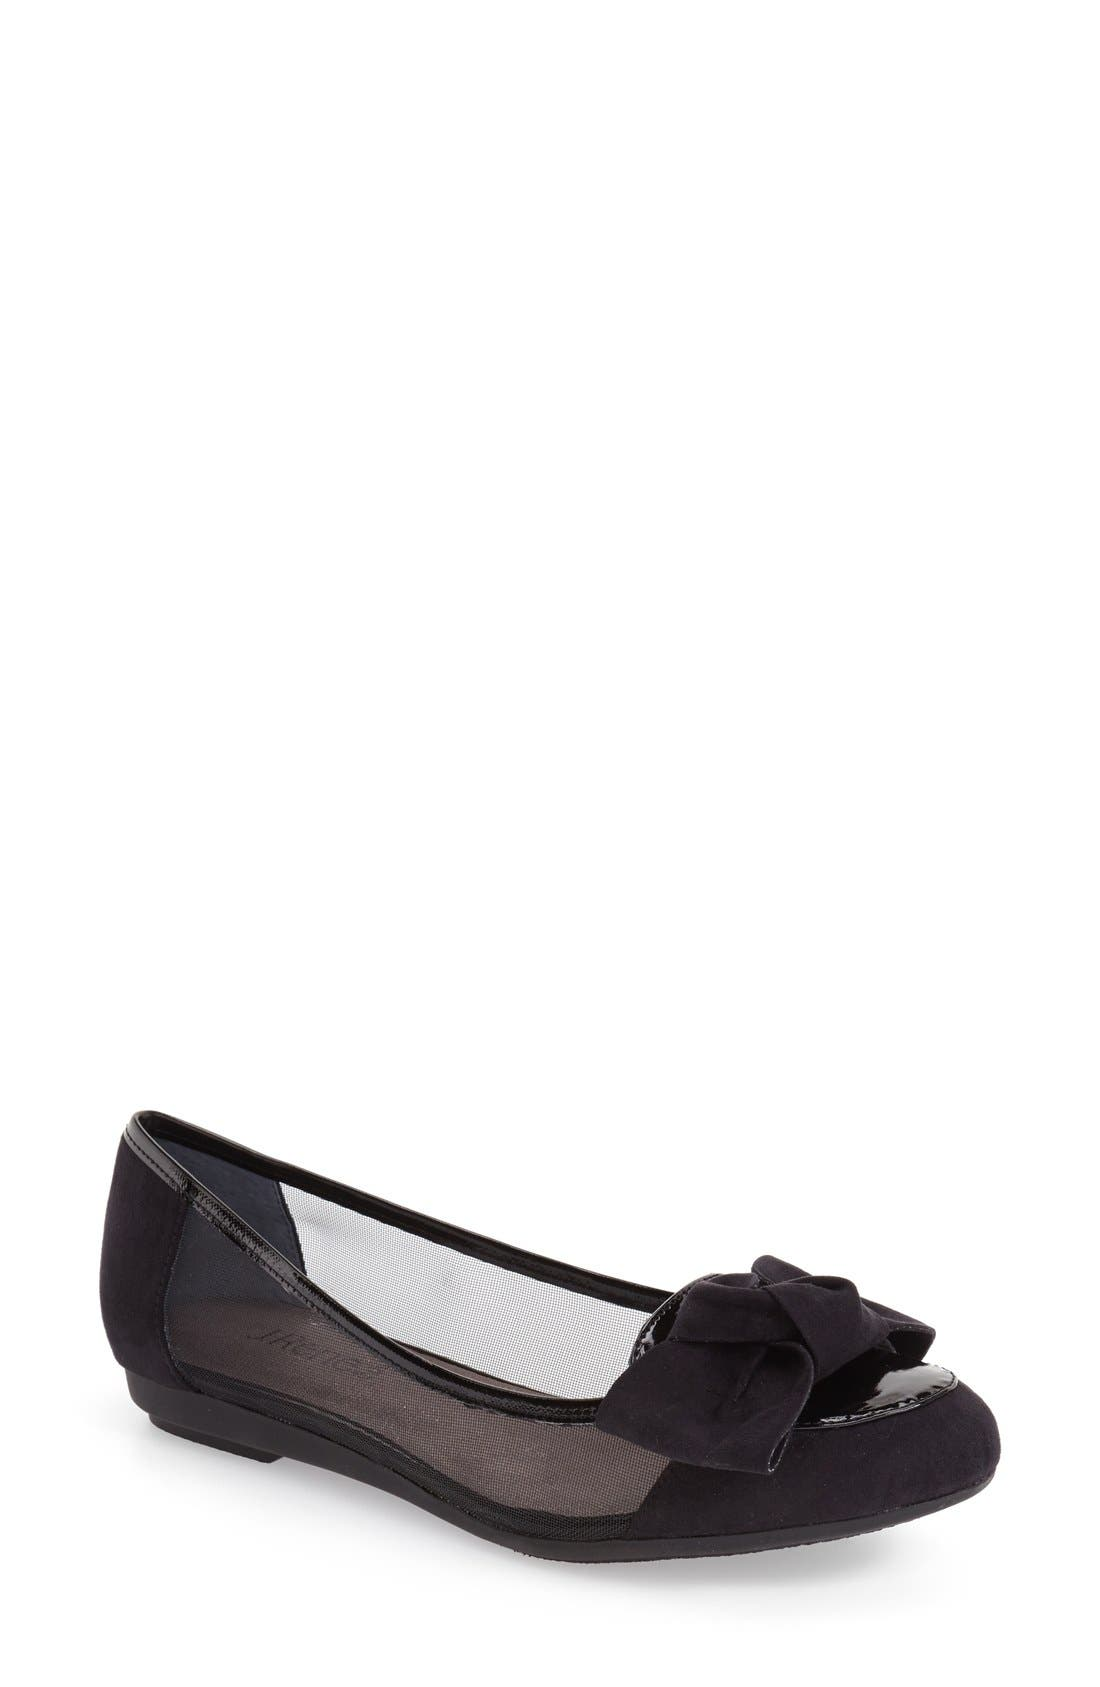 'Bacton' Mesh Inset Bow Flat,                         Main,                         color, BLACK PATENT/ SUEDE